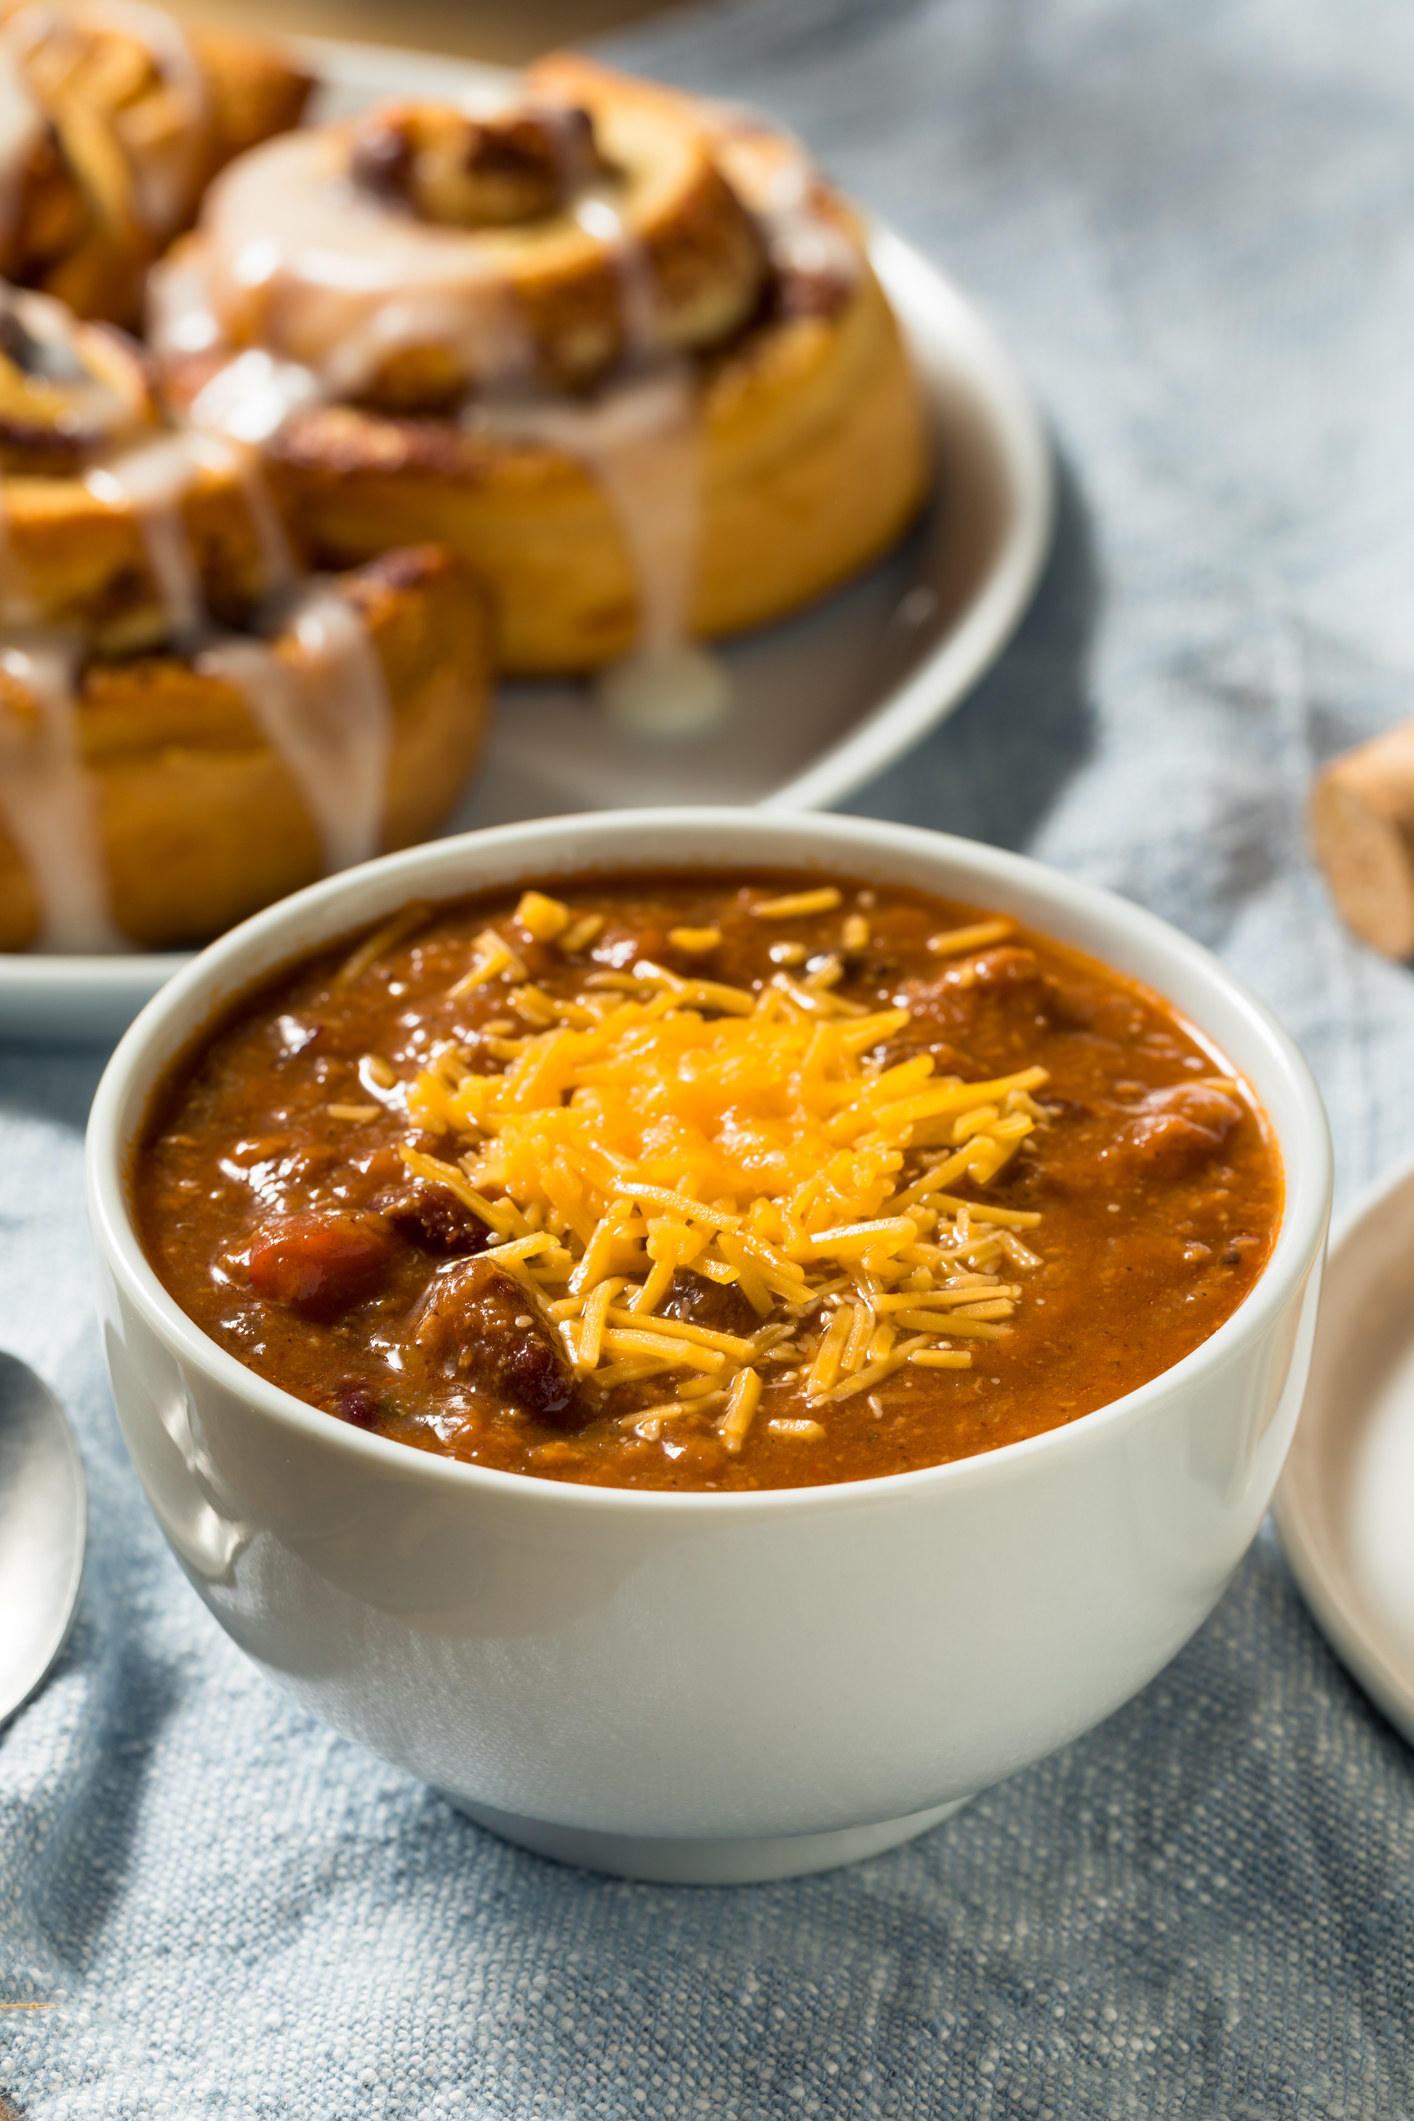 A bowl of chili and sweet cinnamon rolls.